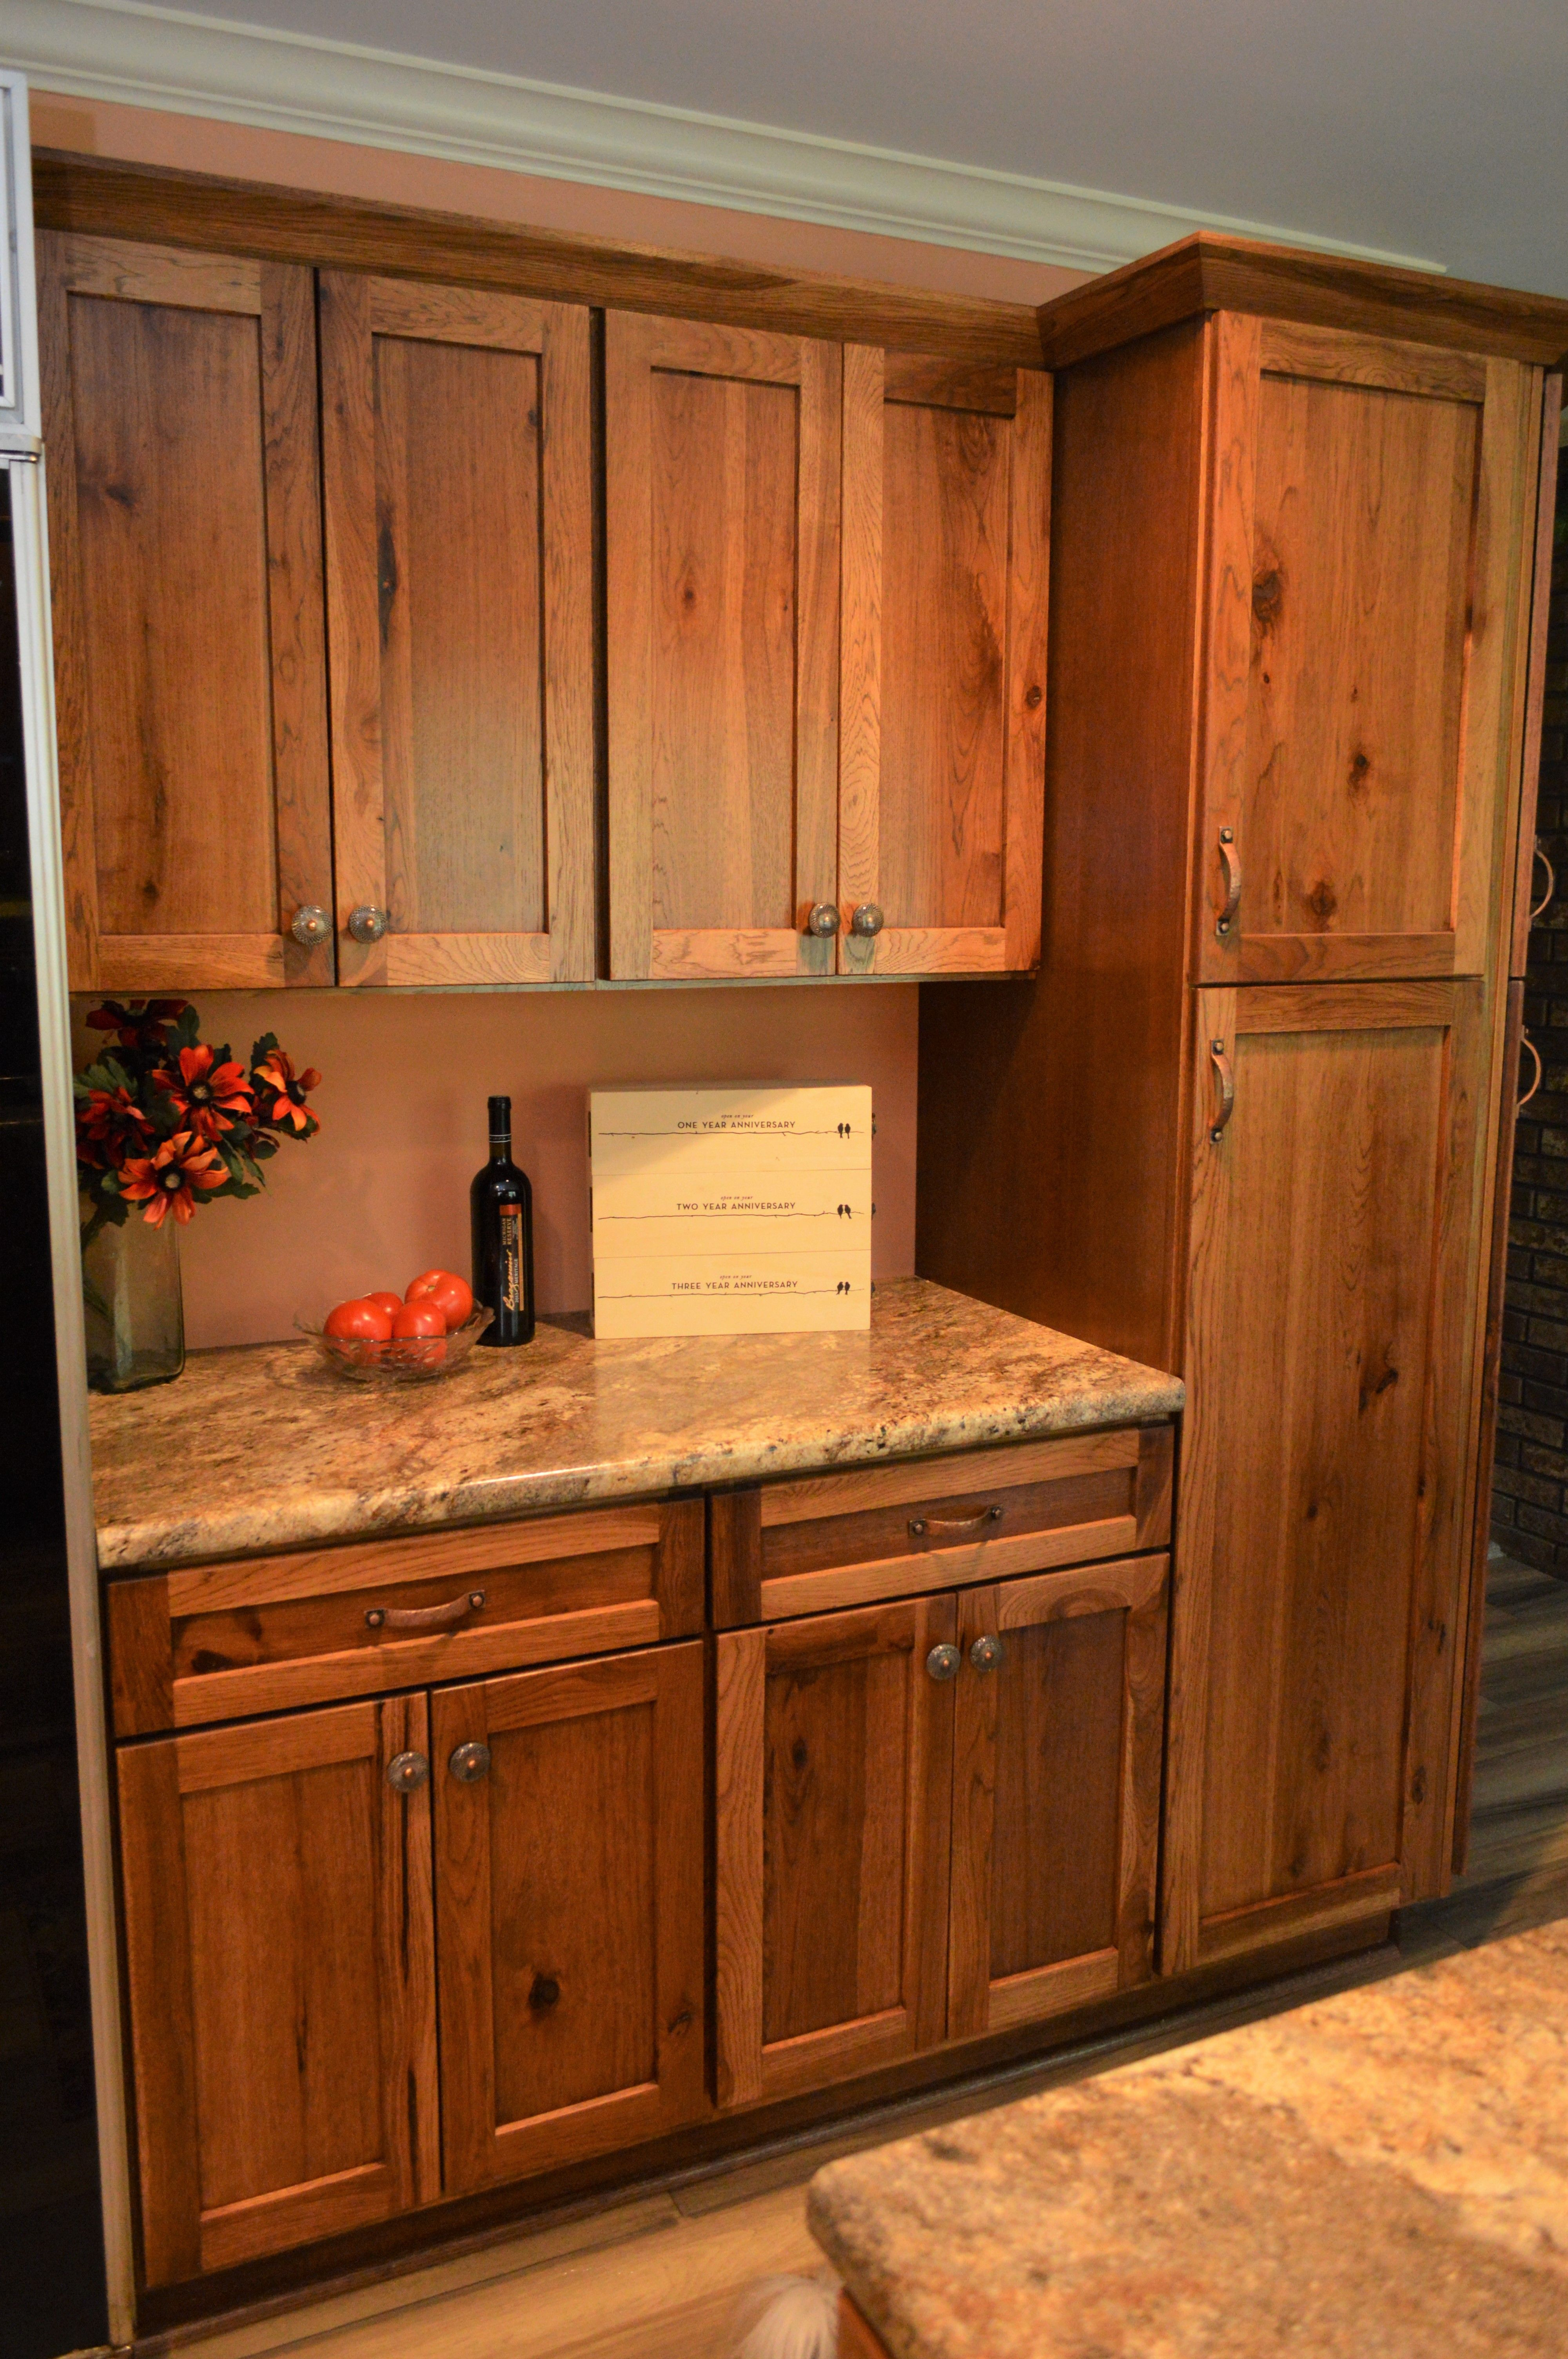 Haas Signature Collection Rustic Hickory Wood Species Pecan Finish Shakertown V Door Style Wood Kitchen Rustic Kitchen Cabinets Rustic Kitchen